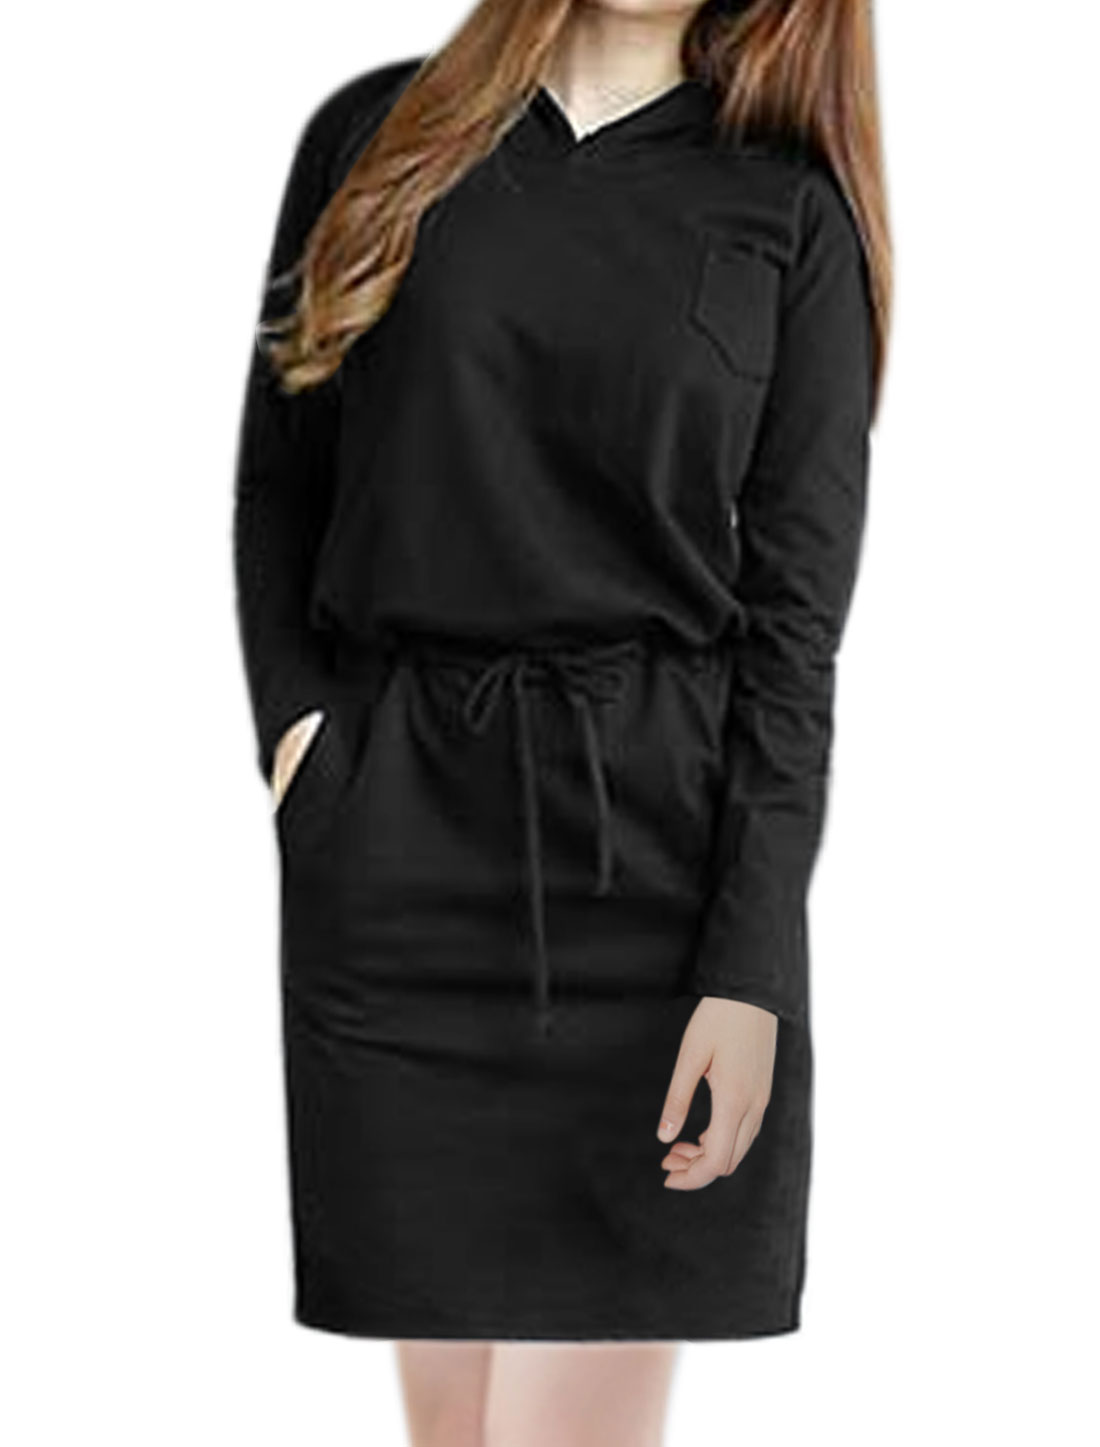 Women Drawstring Waist Slant Pockets Hooded Dress Black S